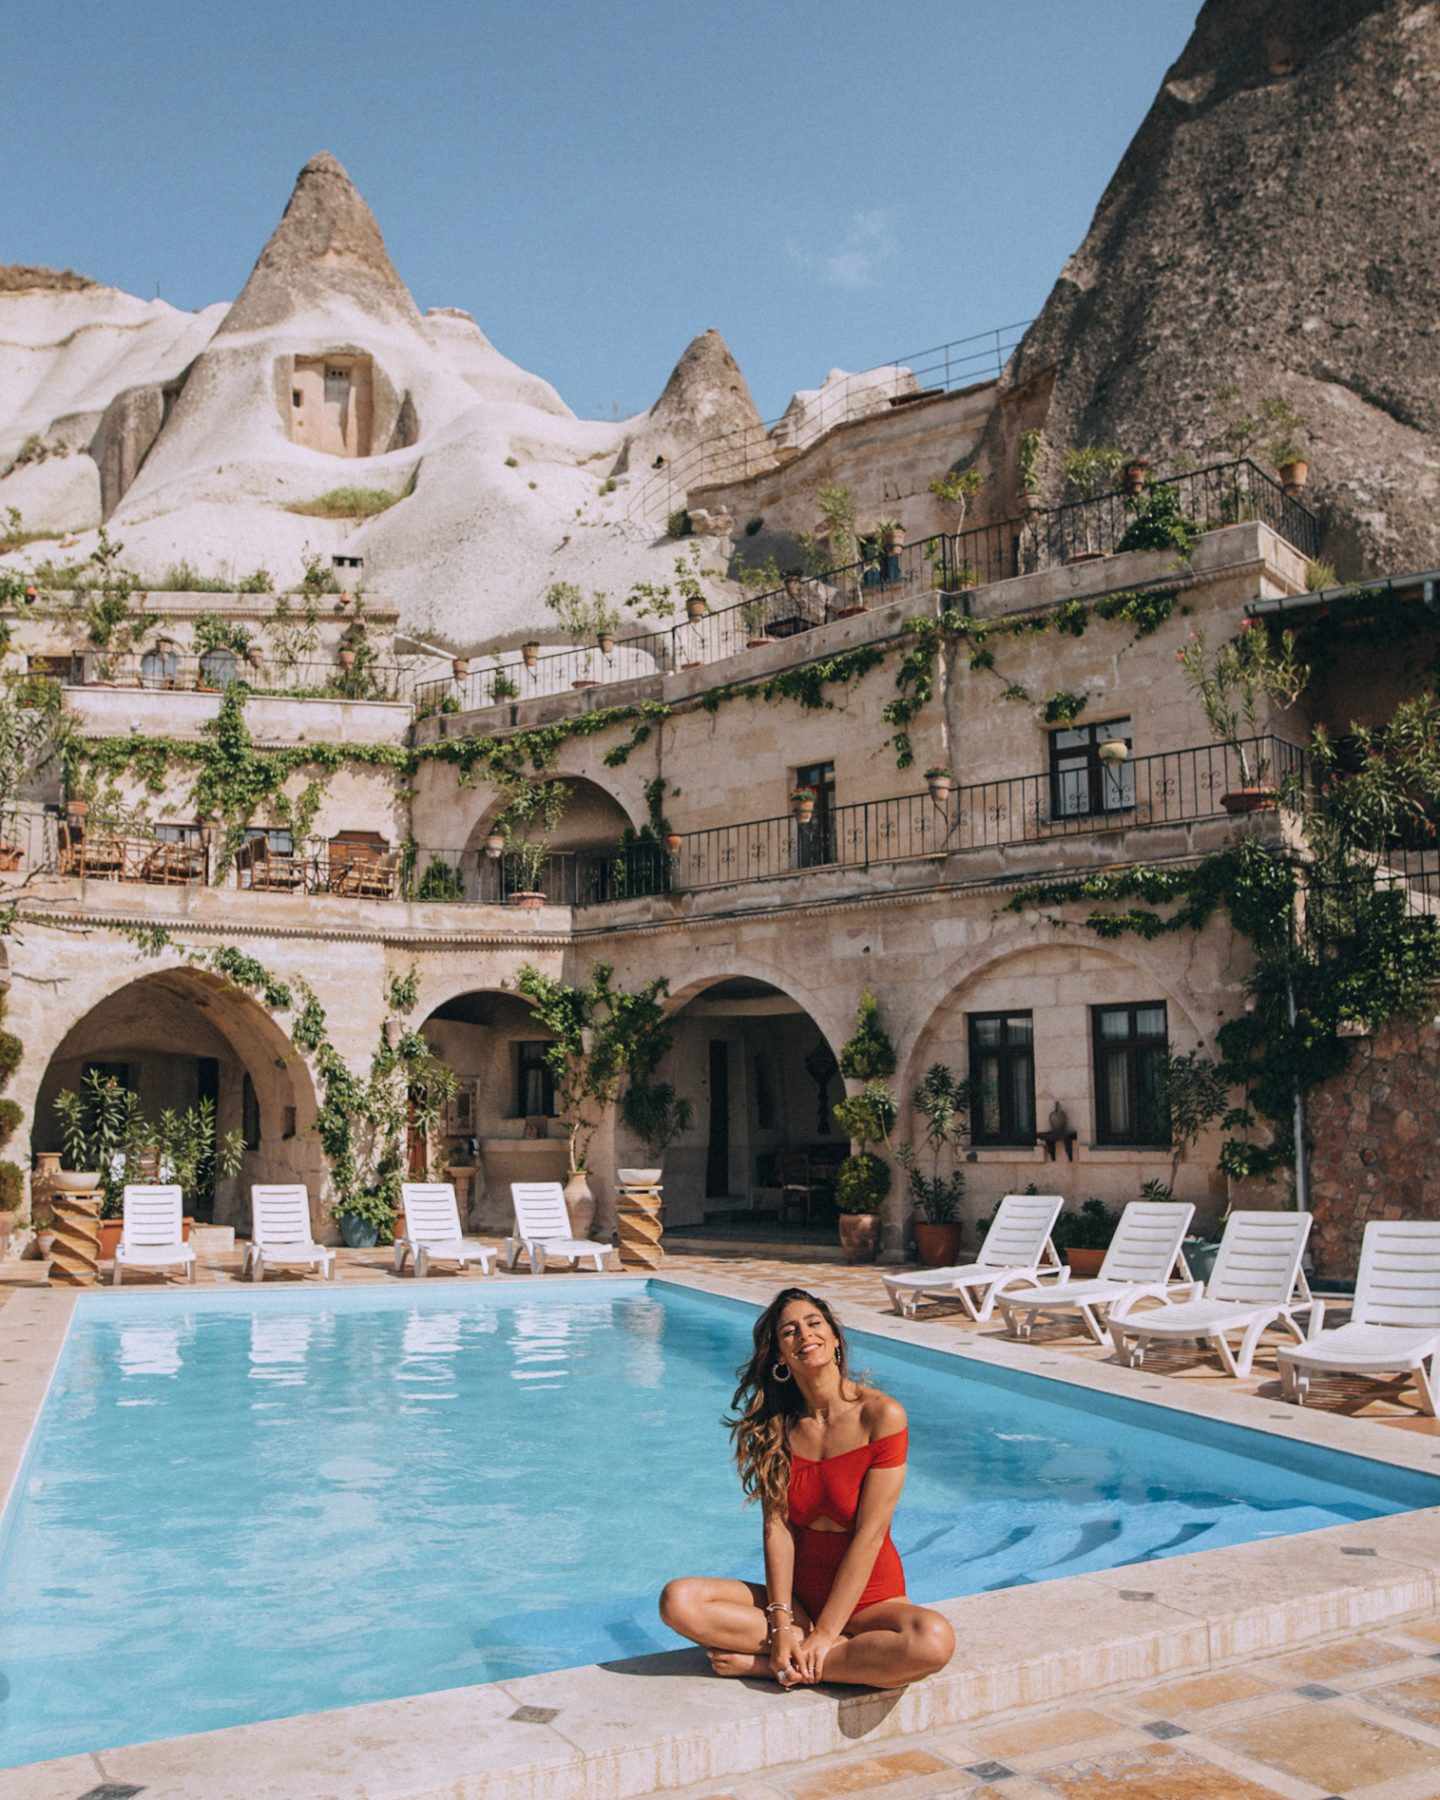 Local Cave House hotel pool in Cappadocia